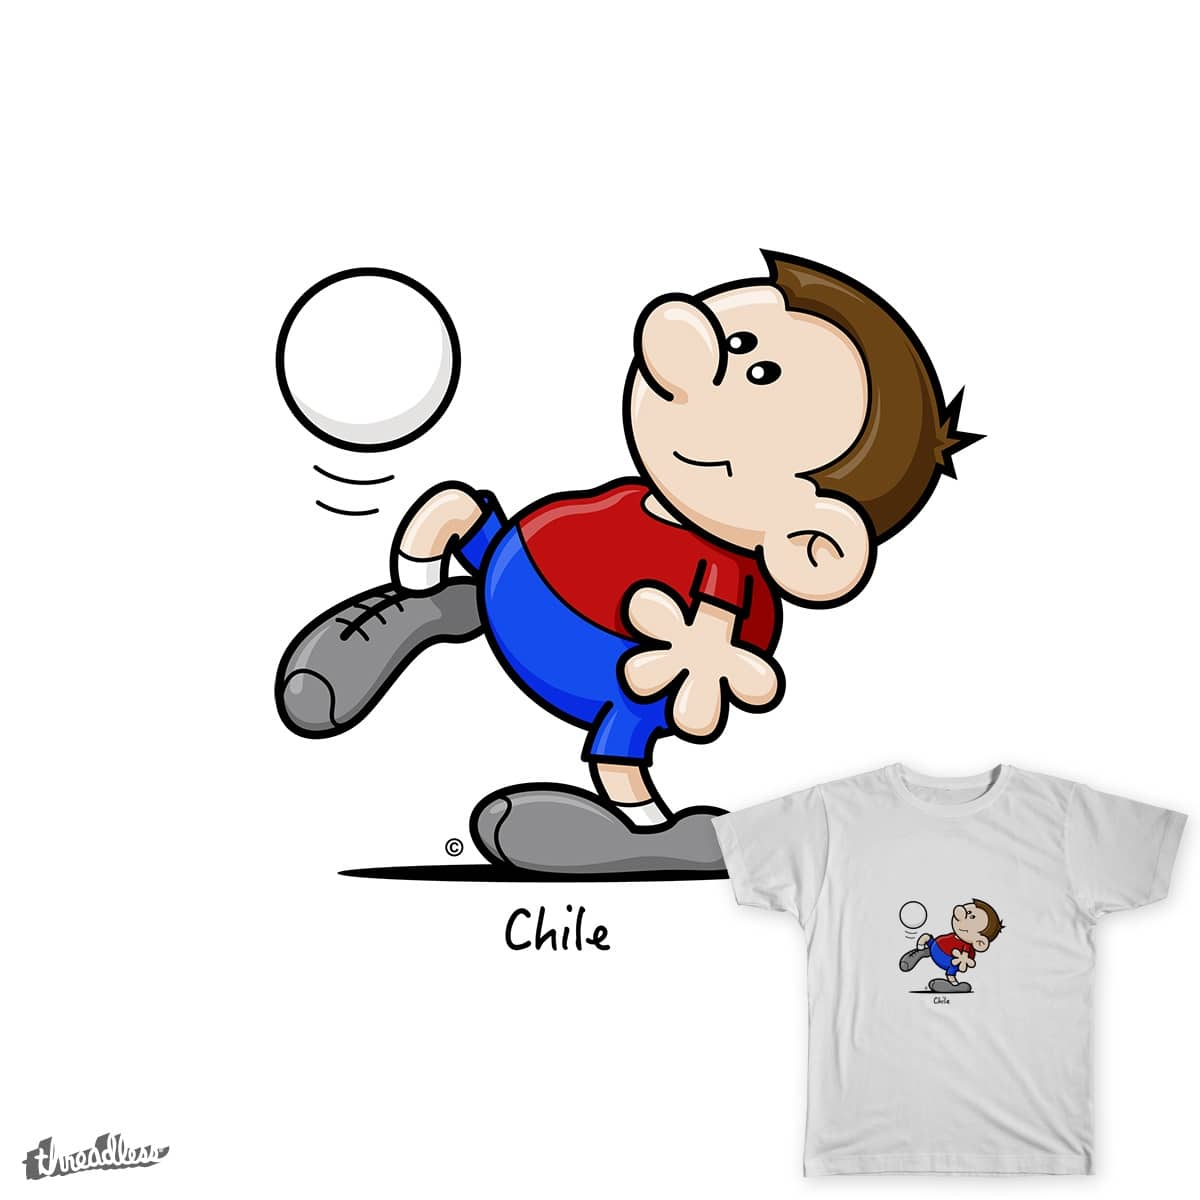 2014 World Cup Cartoons - Chile by spaghettiarts on Threadless